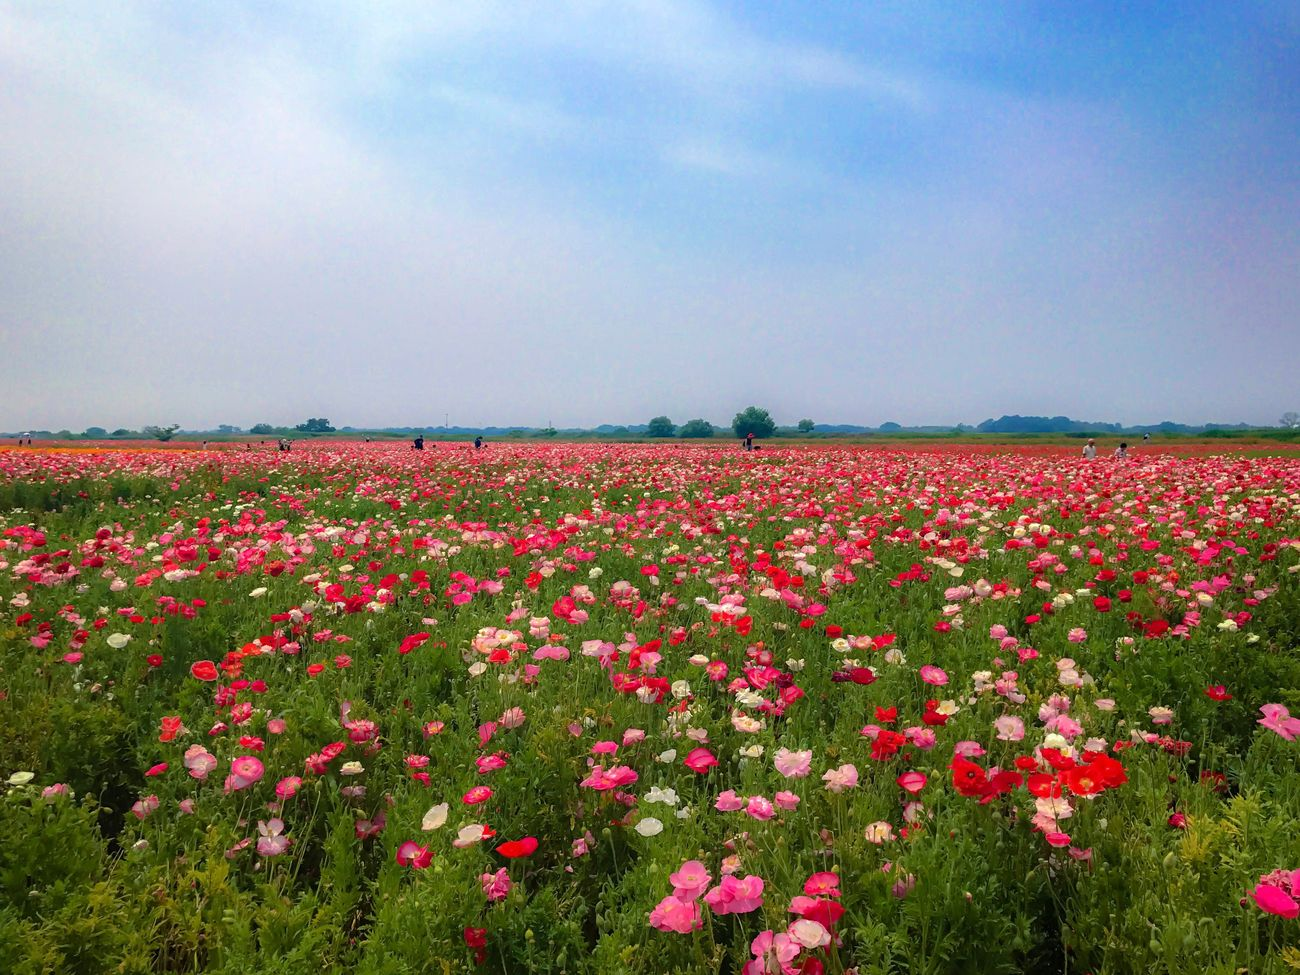 Embraced by flowers Landscape Flowers Nature Field Flower Growth Beauty In Nature Tranquility Tranquil Scene Sky Scenics Outdoors Freshness Rural Scene Poppy Flowerlovers Landscape_Collection Enjoying Nature